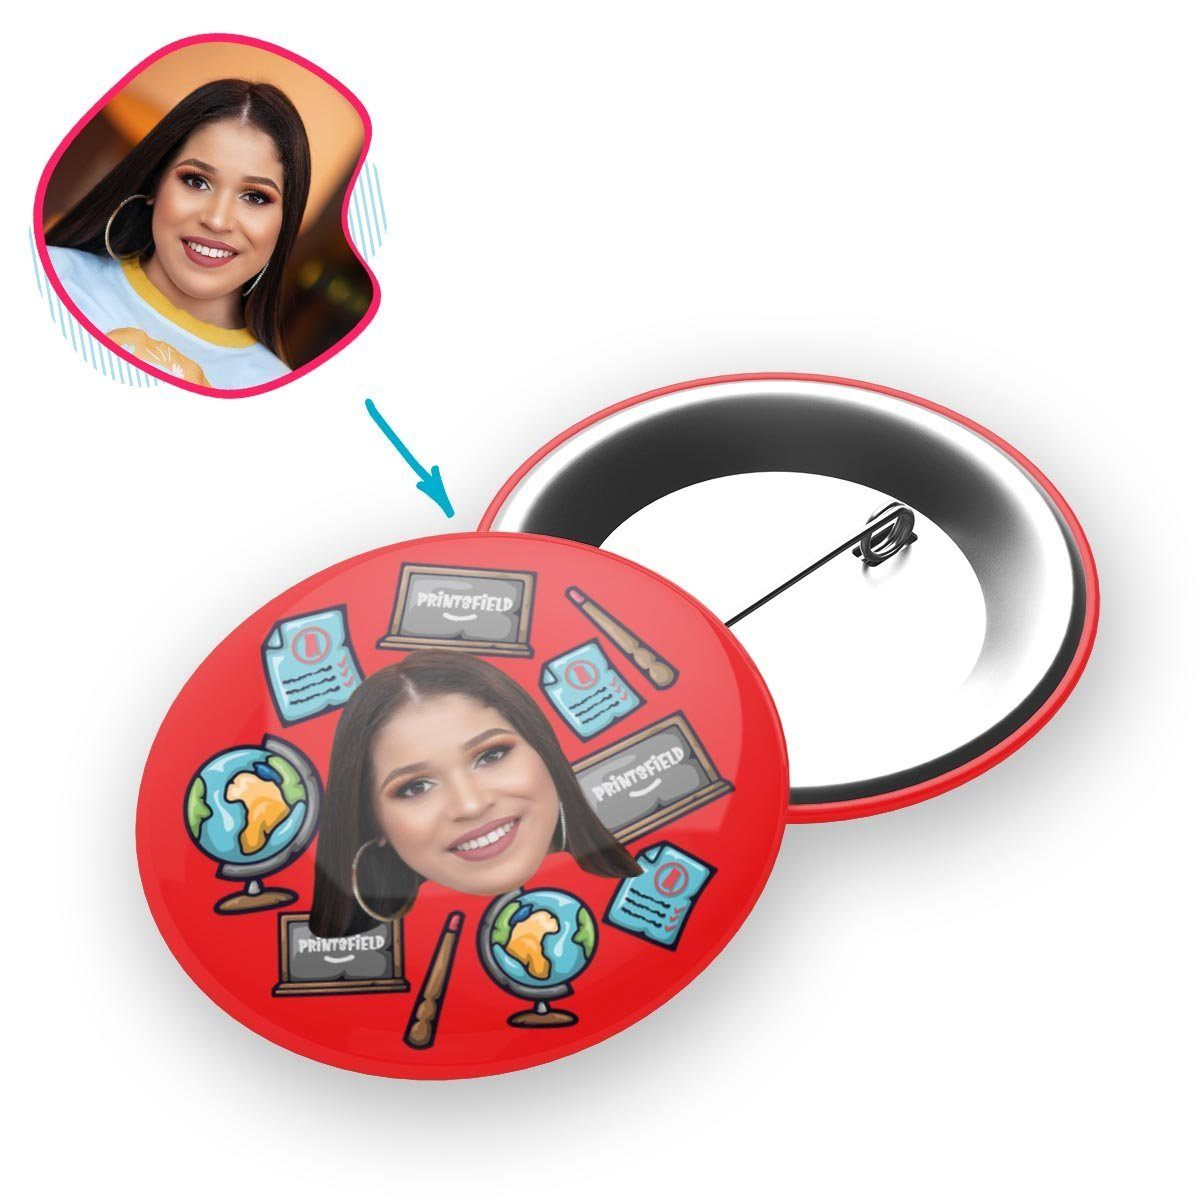 Red Teacher personalized pin with photo of face printed on it